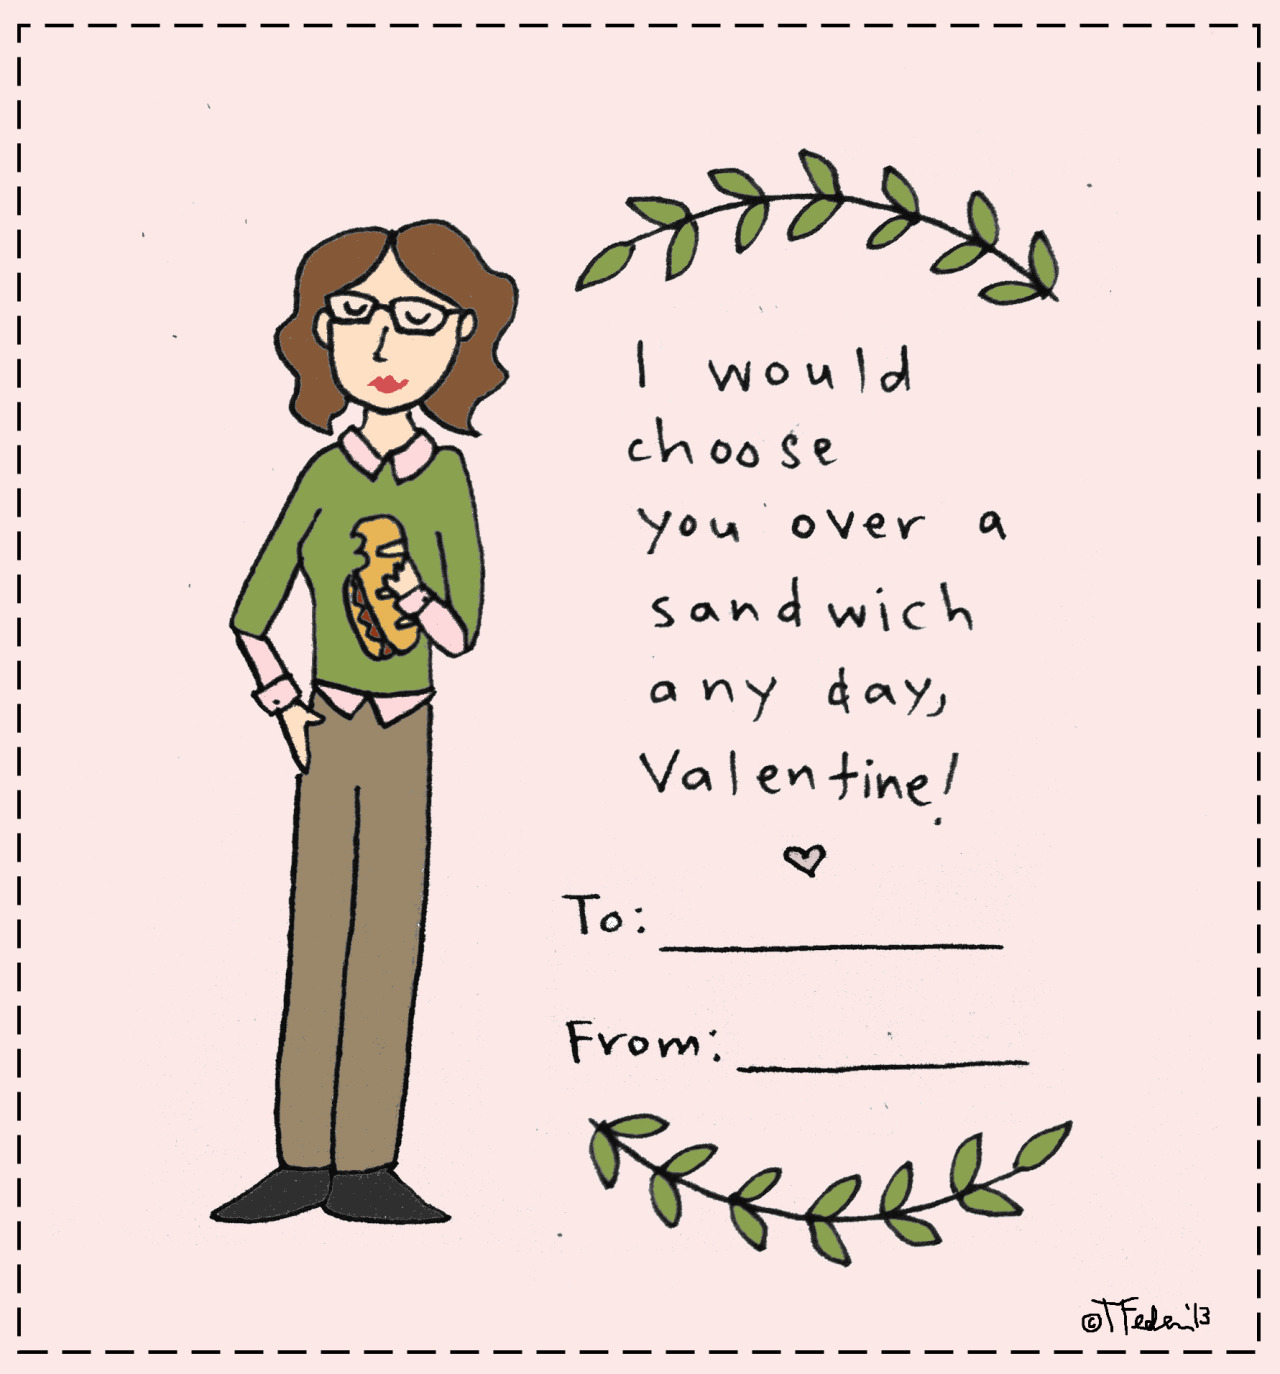 Sandwich Day valentine (by Tyler Feder)